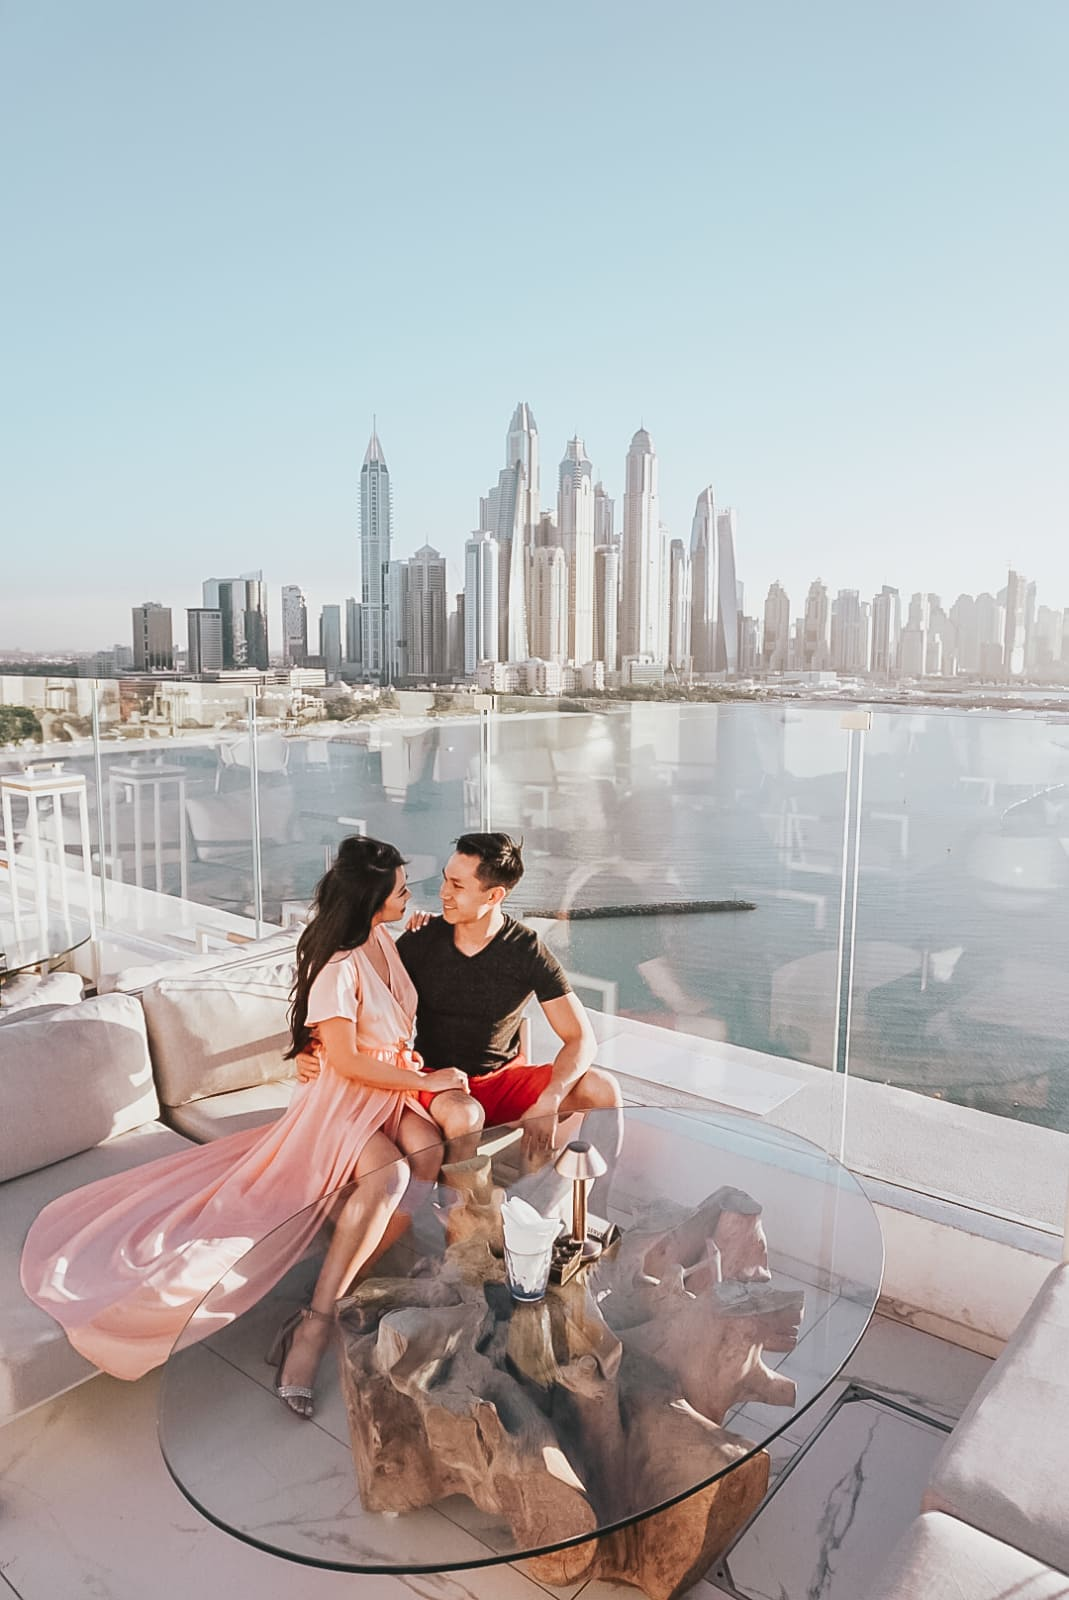 The couple look into each other's eyes while on the rooftop in Dubai.